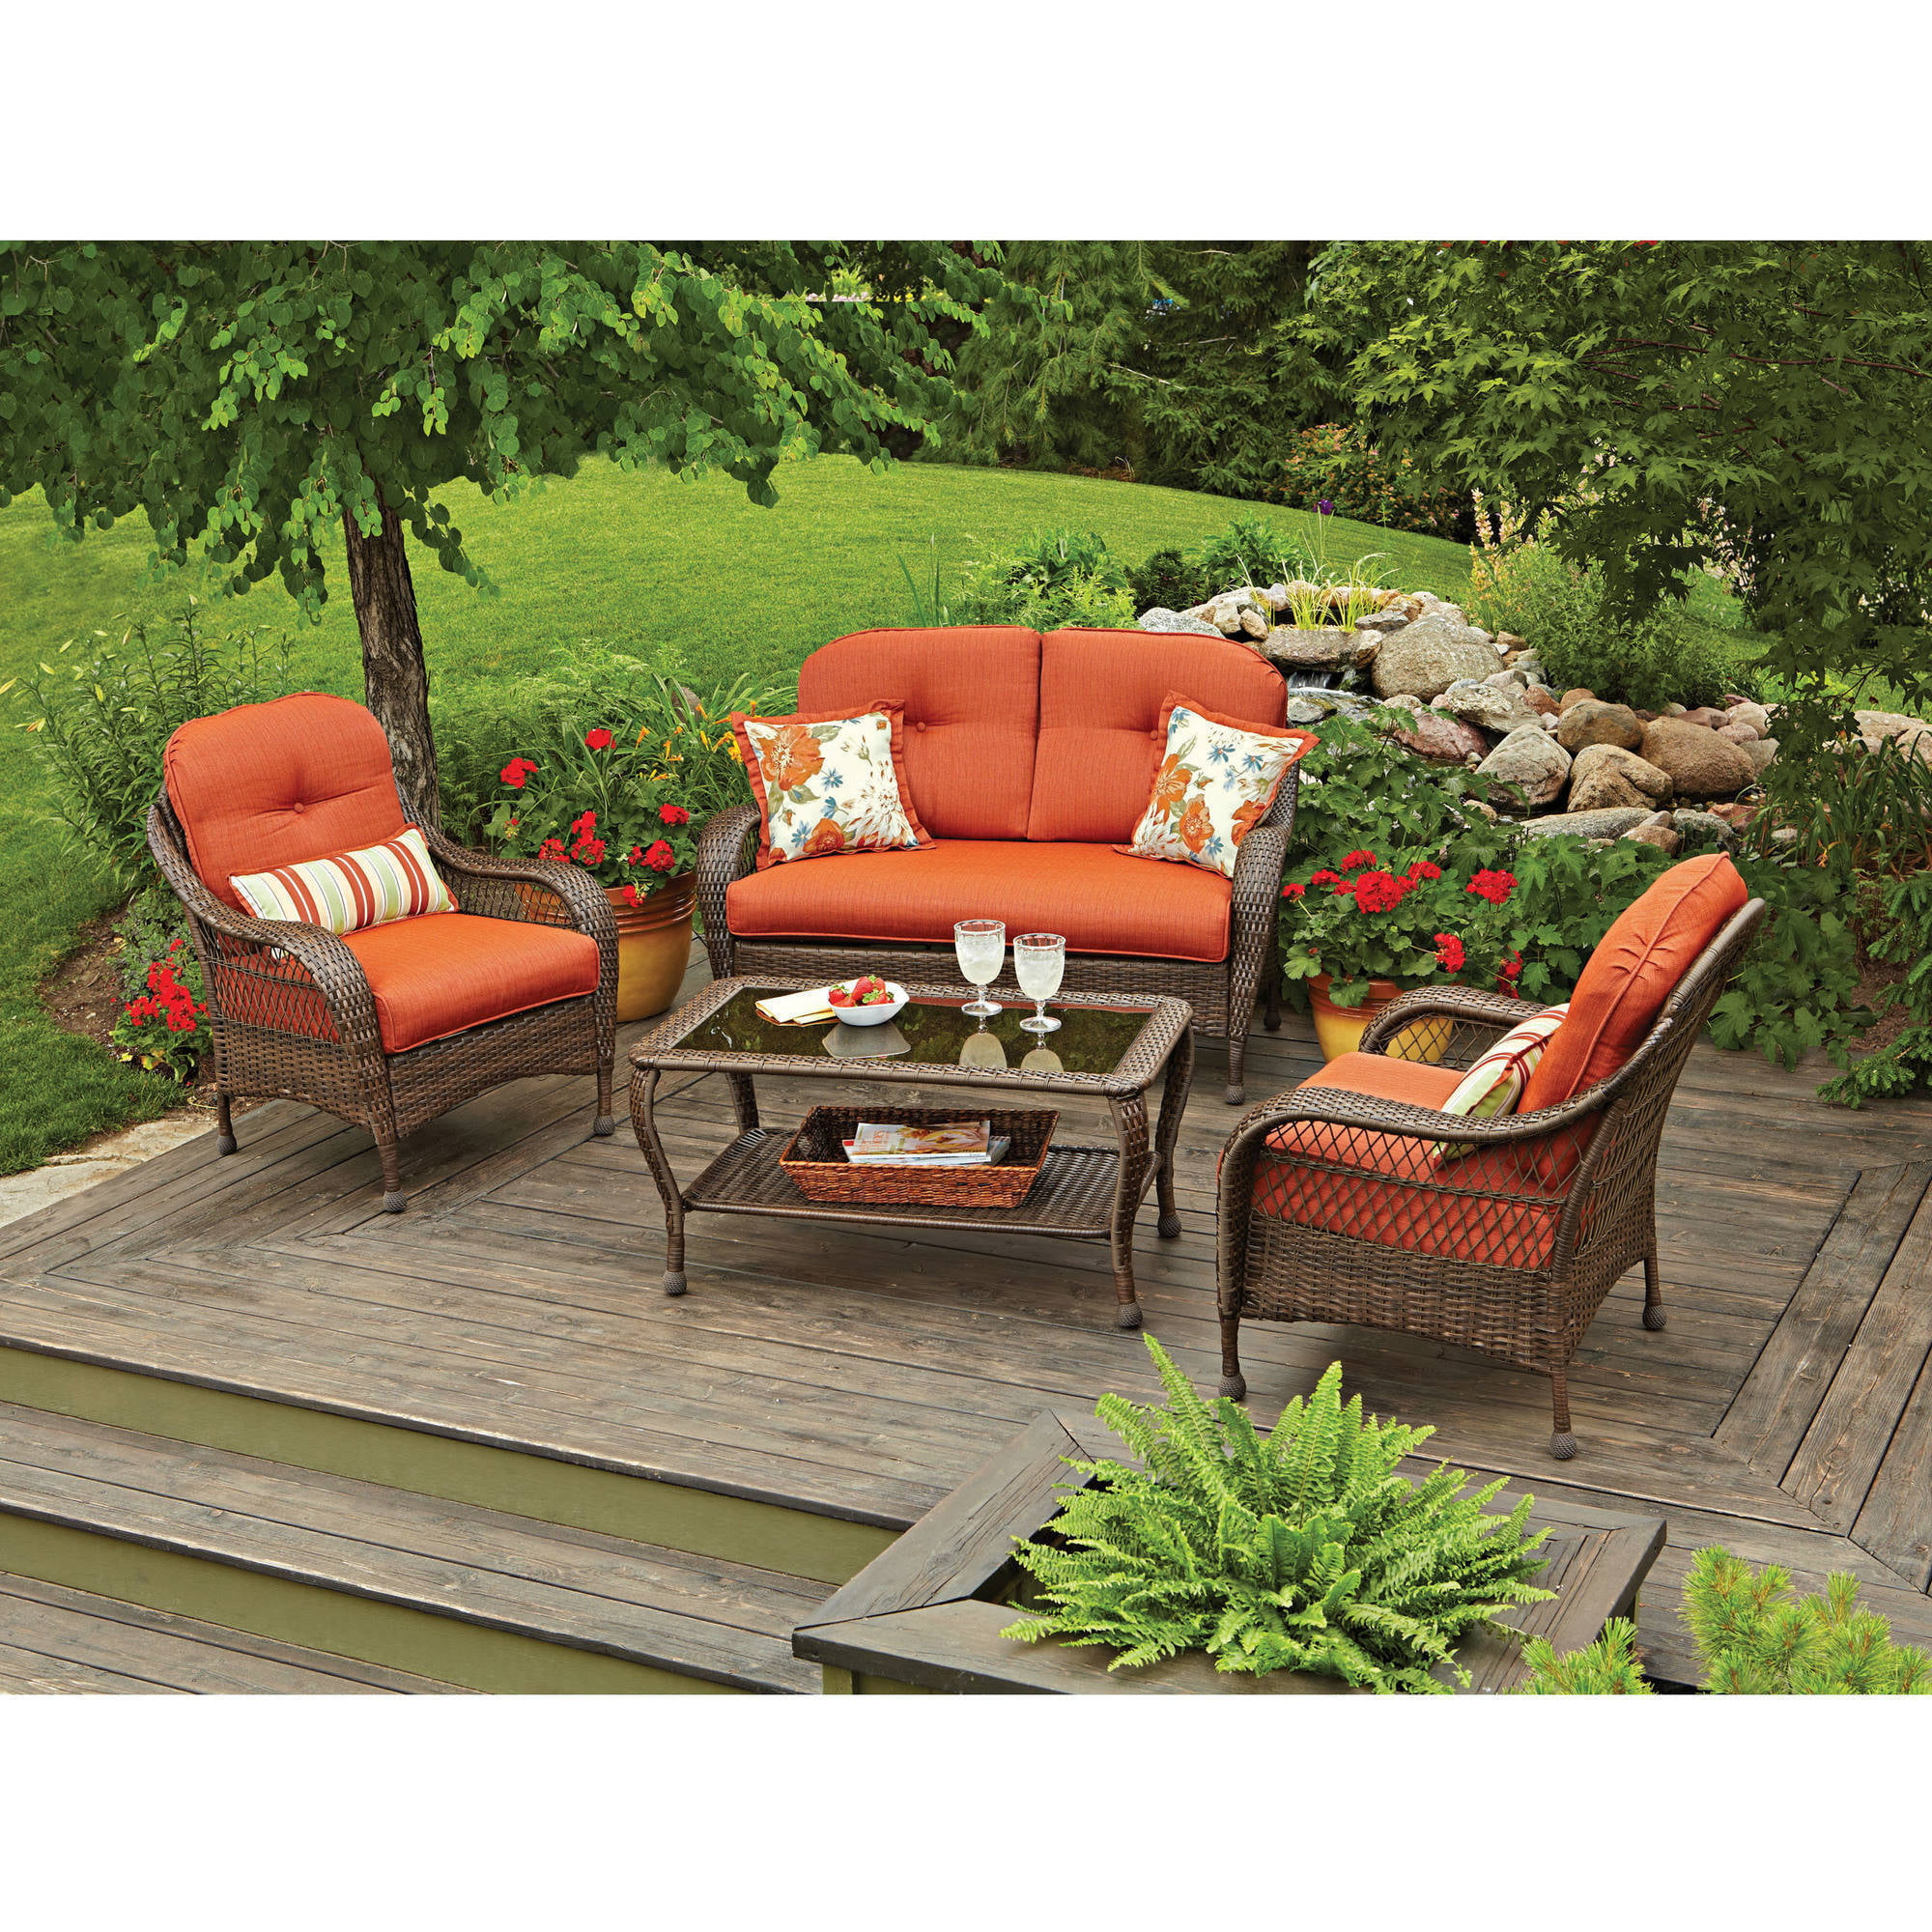 Better Homes and Gardens Azalea Ridge 4 Piece Patio Conversation